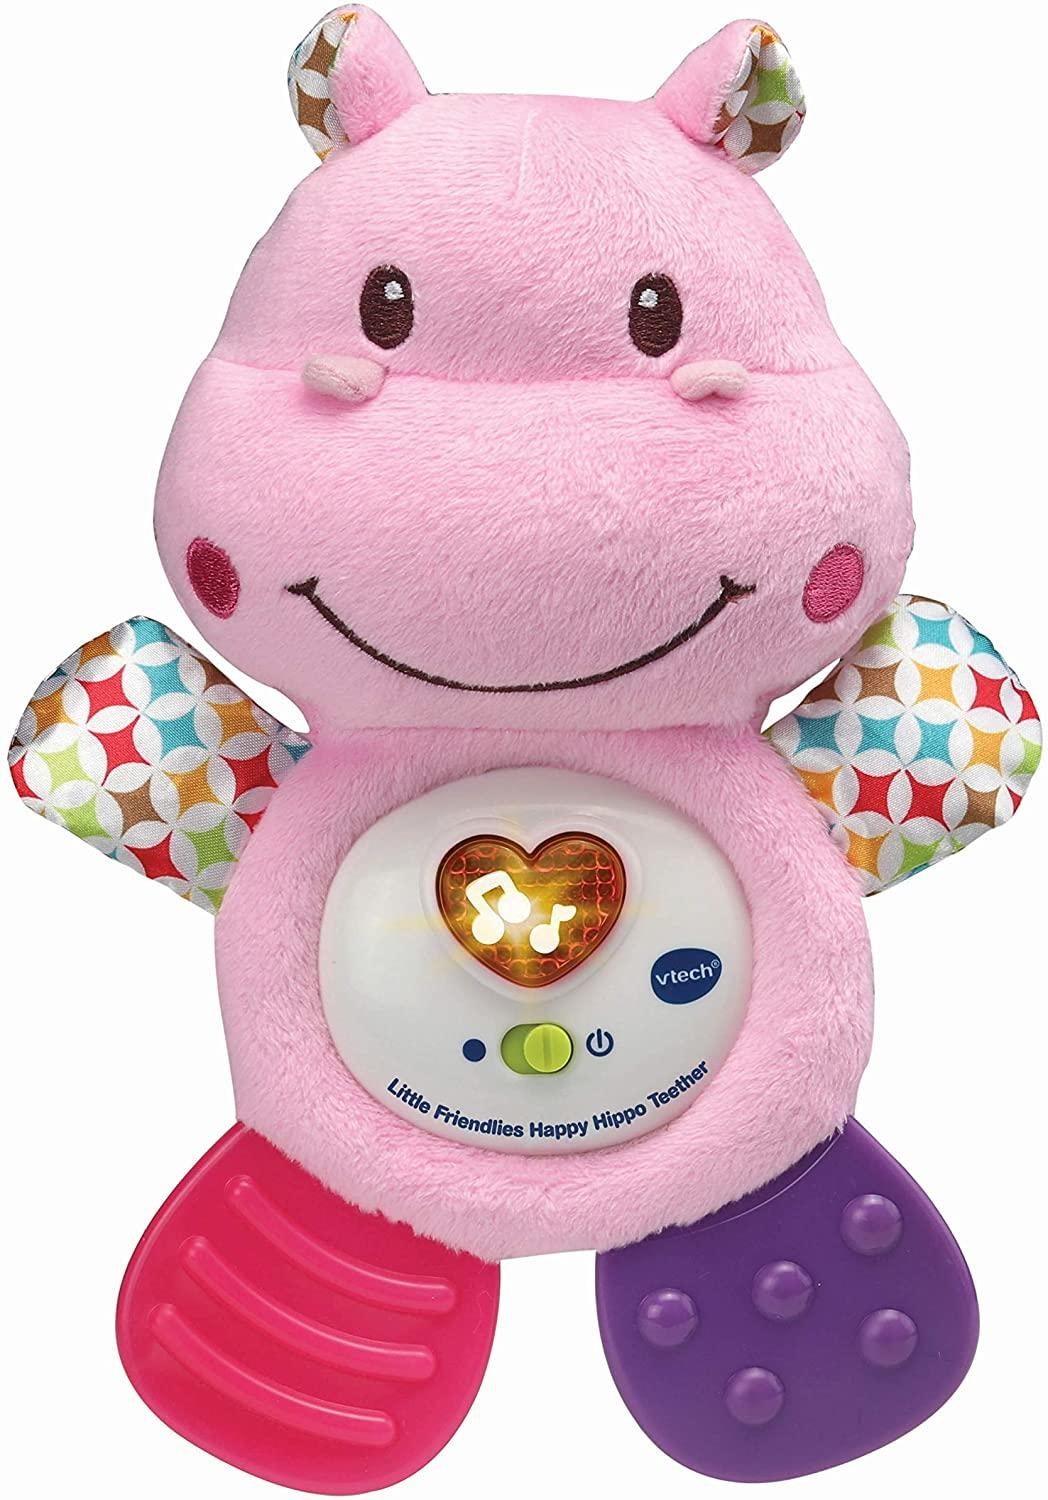 Vtech Happy Hippo Teether Pink Toymaster Ballina